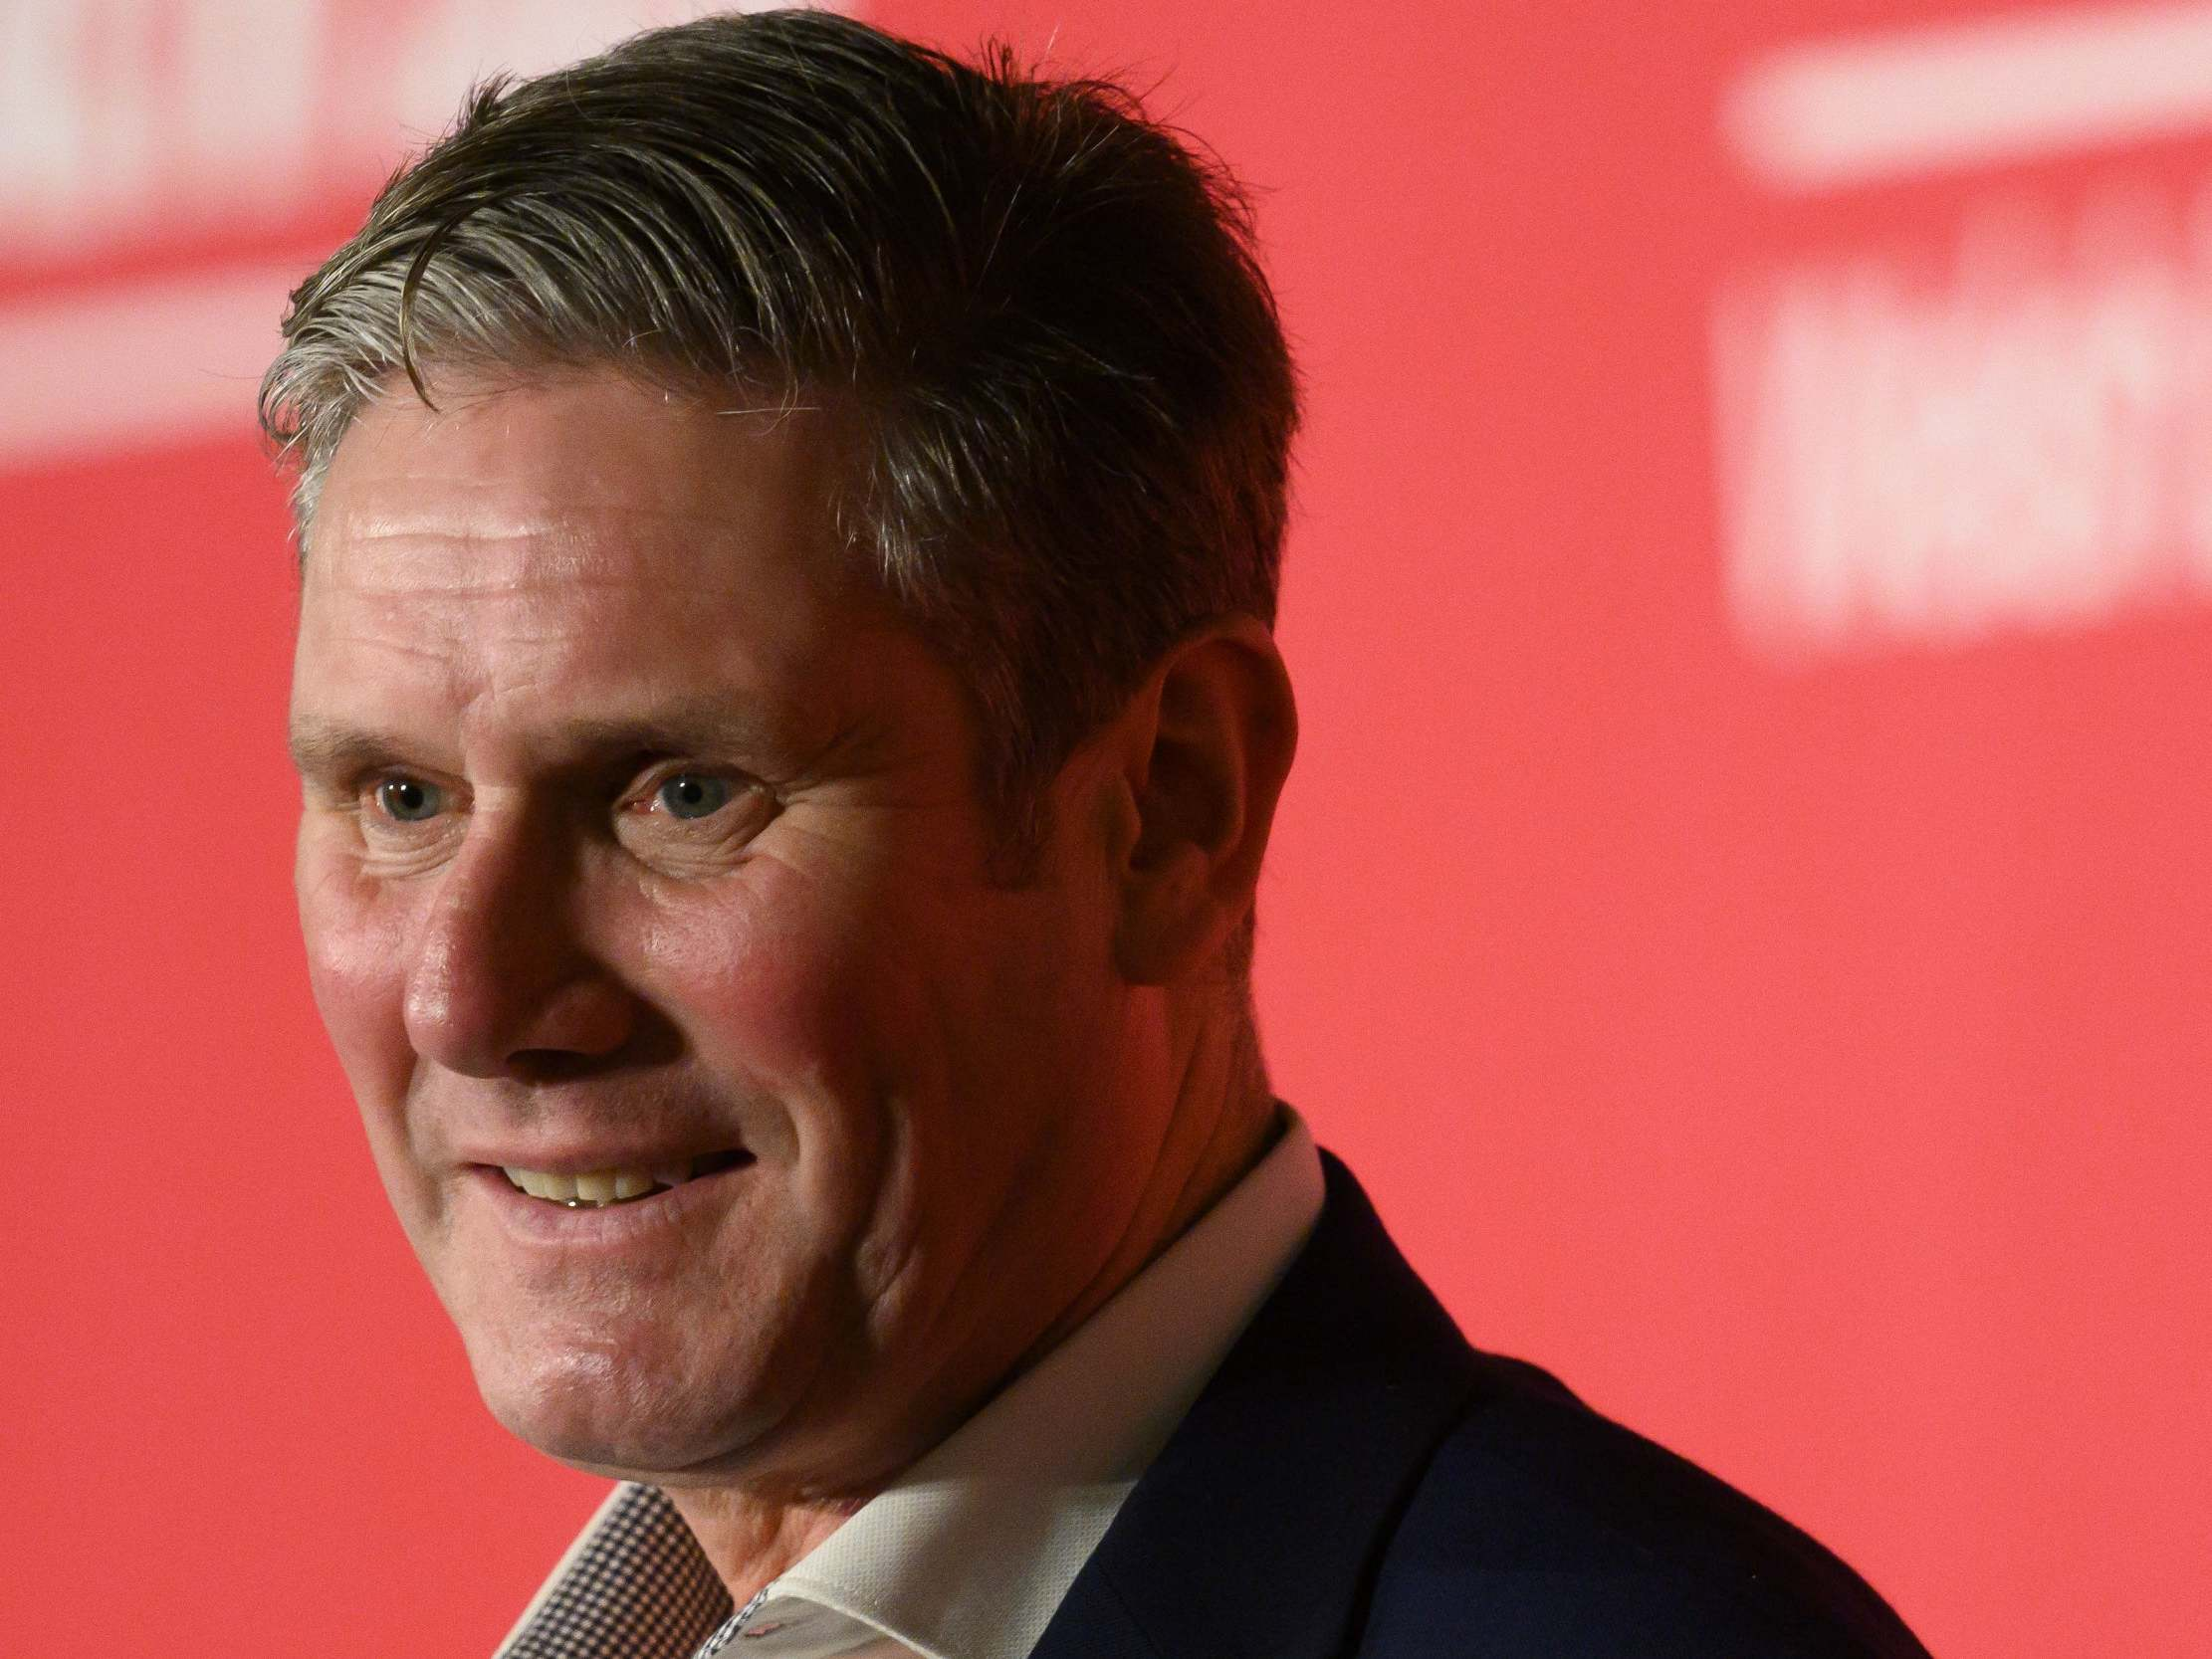 Keir Starmer 'not concerned' with being labelled a Blairite or a Corbynista